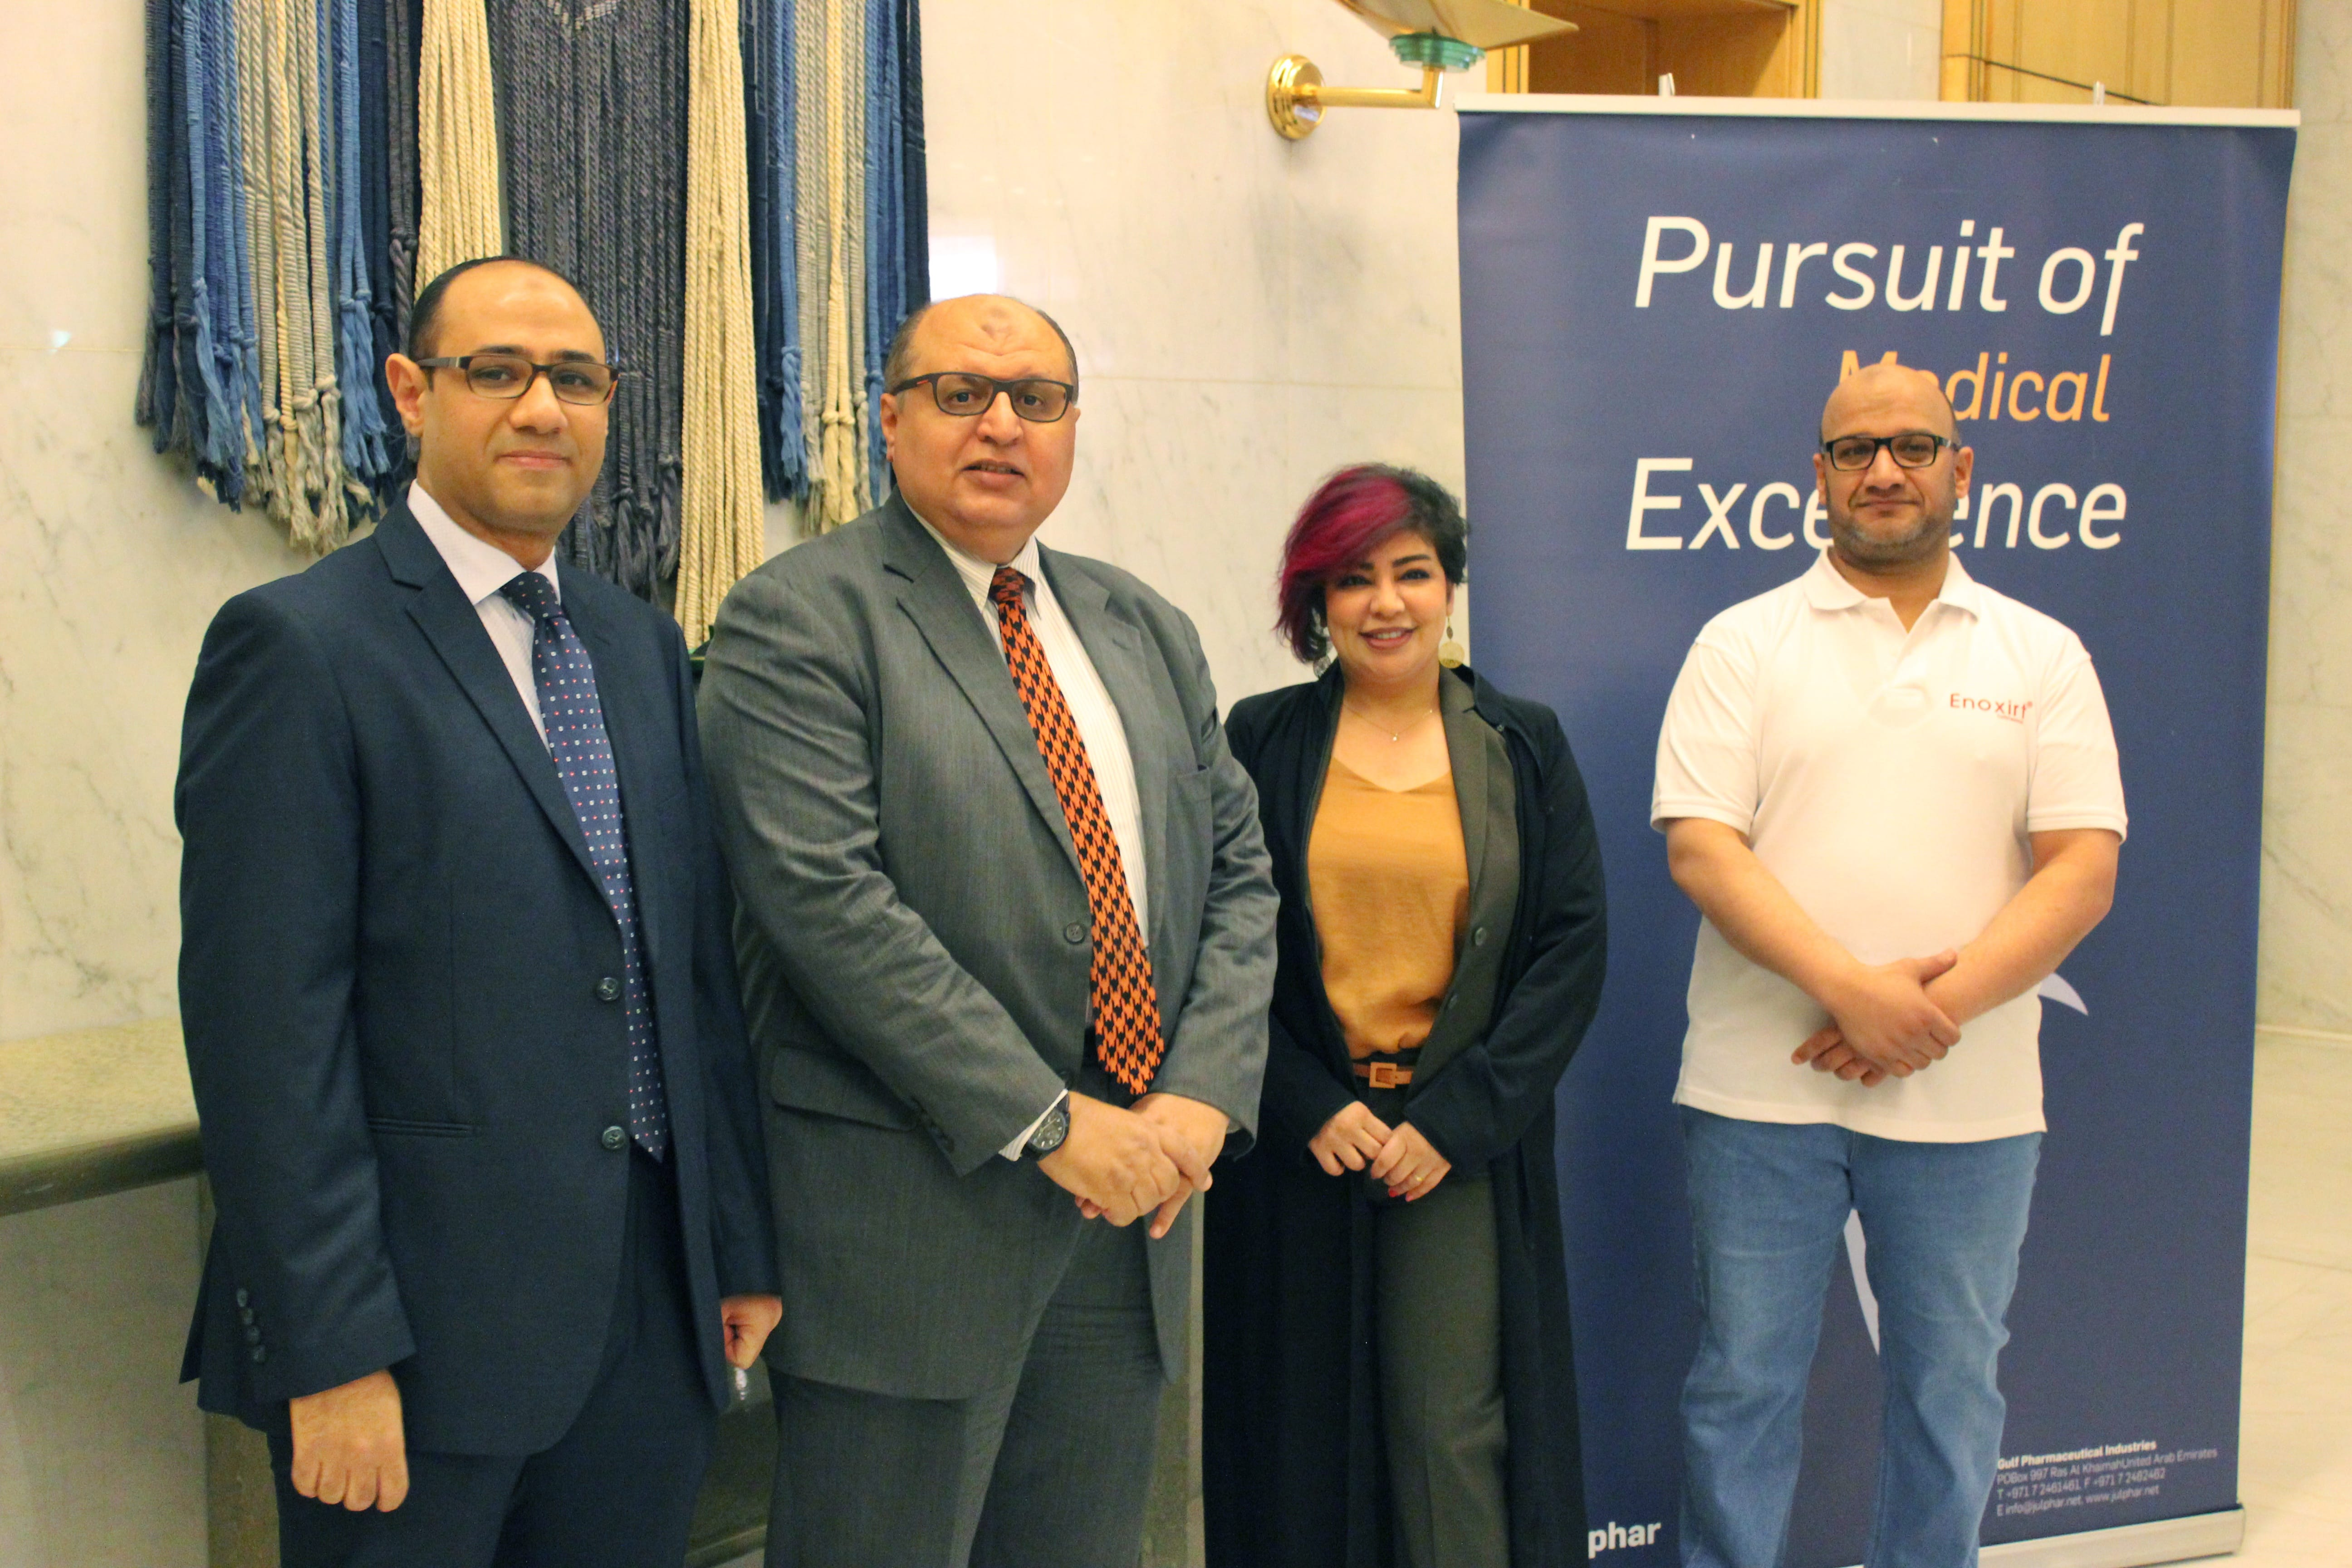 Julphar Launches Pursuit of Medical Excellence Program in Riyadh